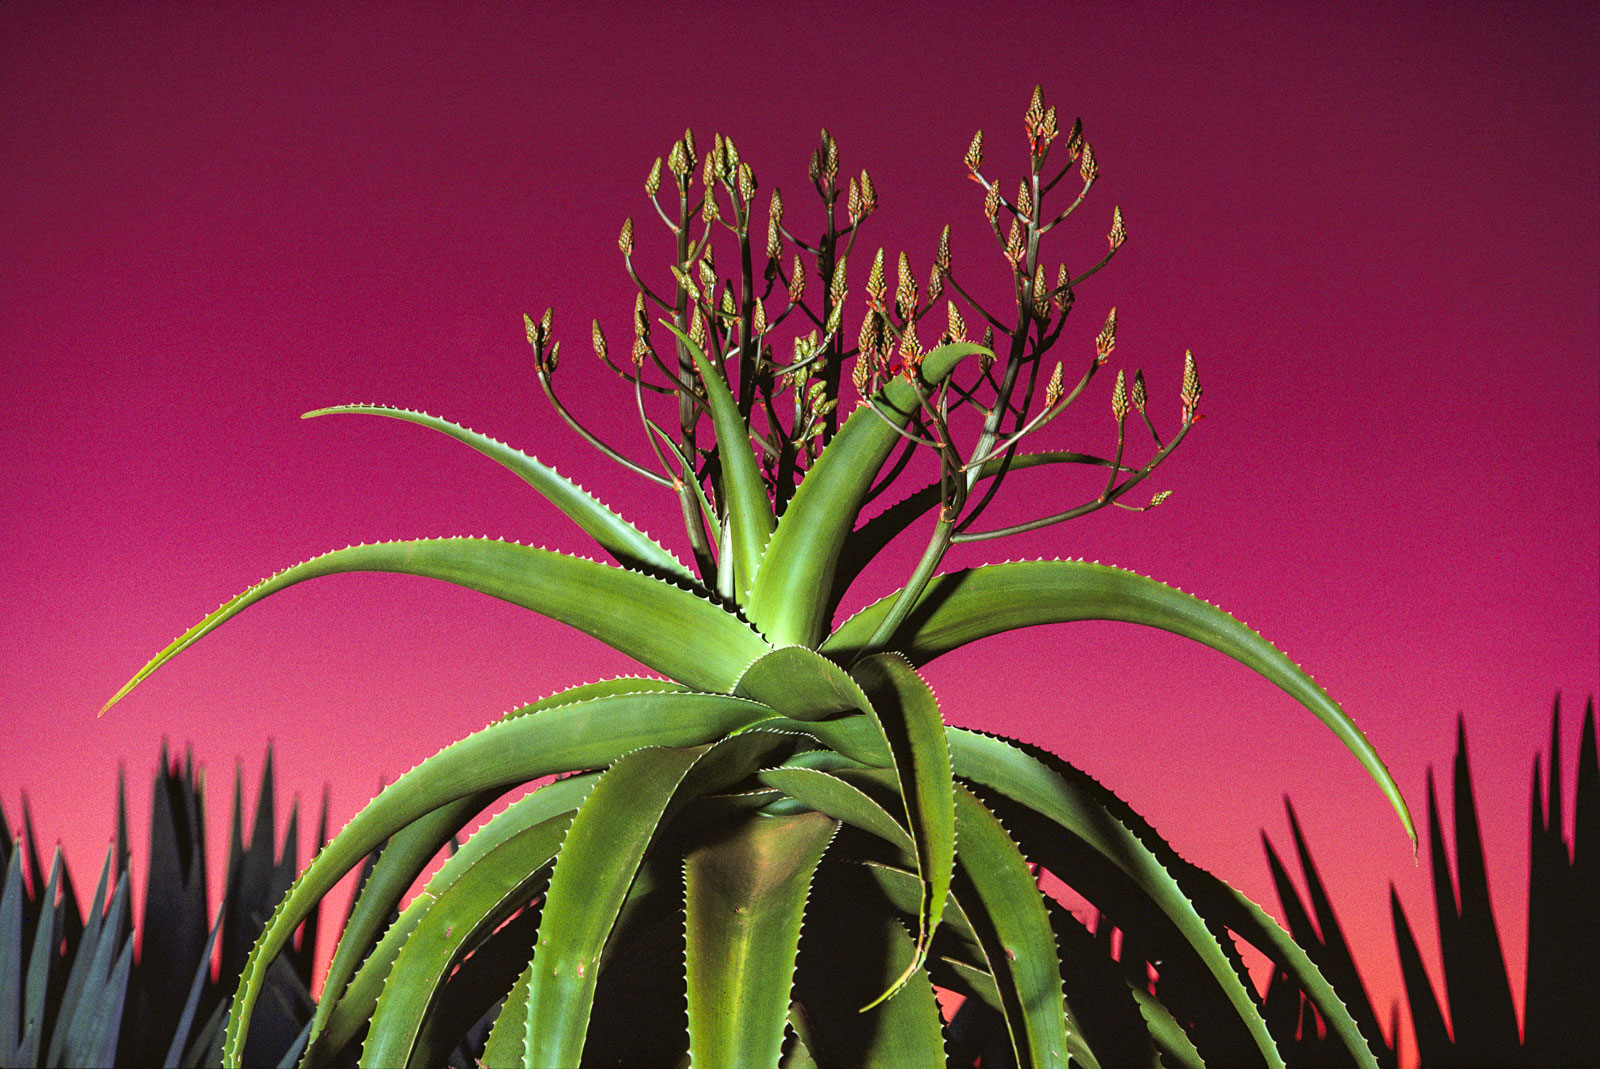 Aloe in bloom, Southern Madagascar